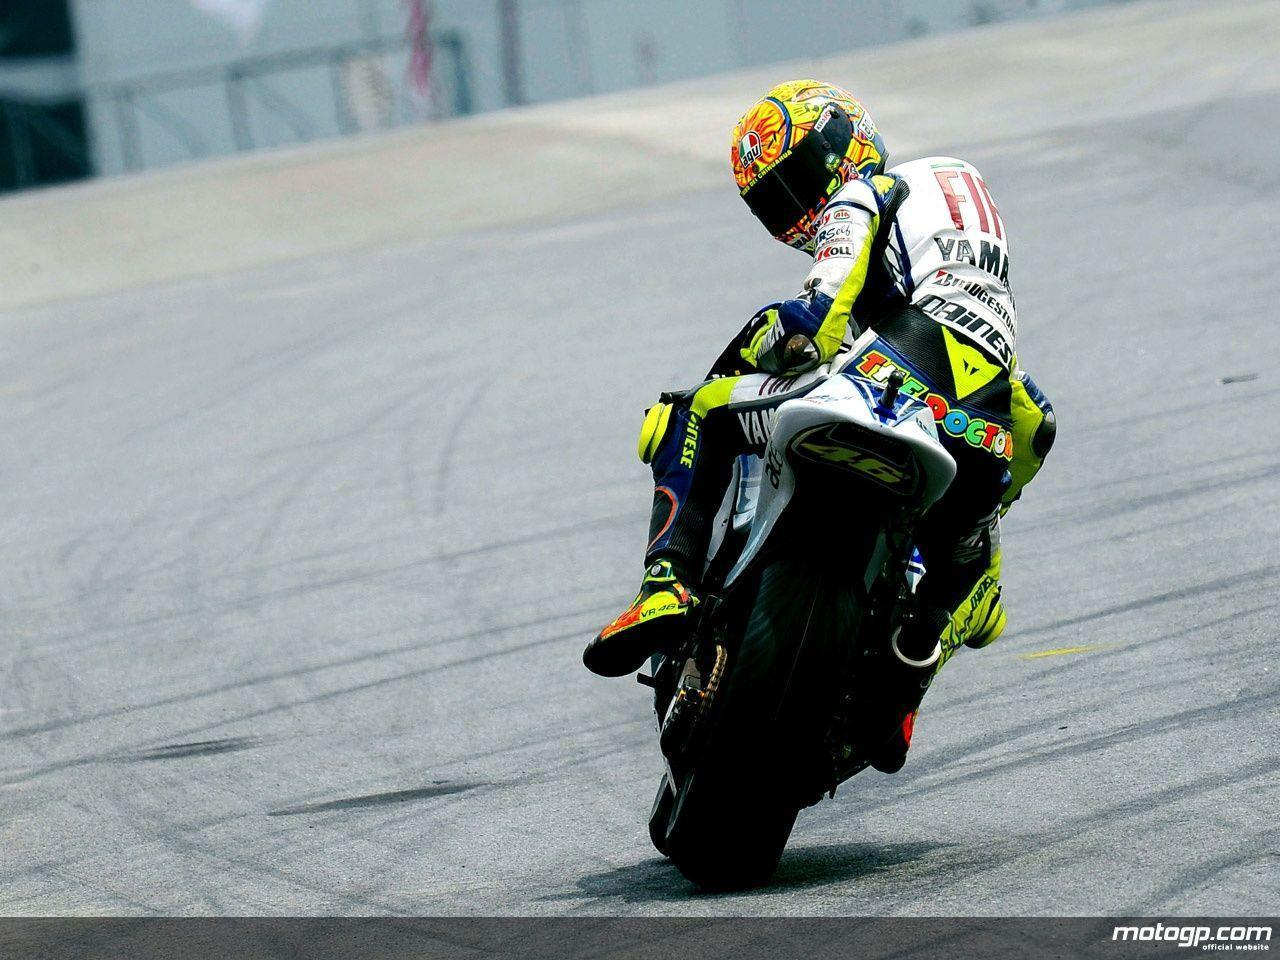 Vr46 Wallpapers Wallpaper Cave